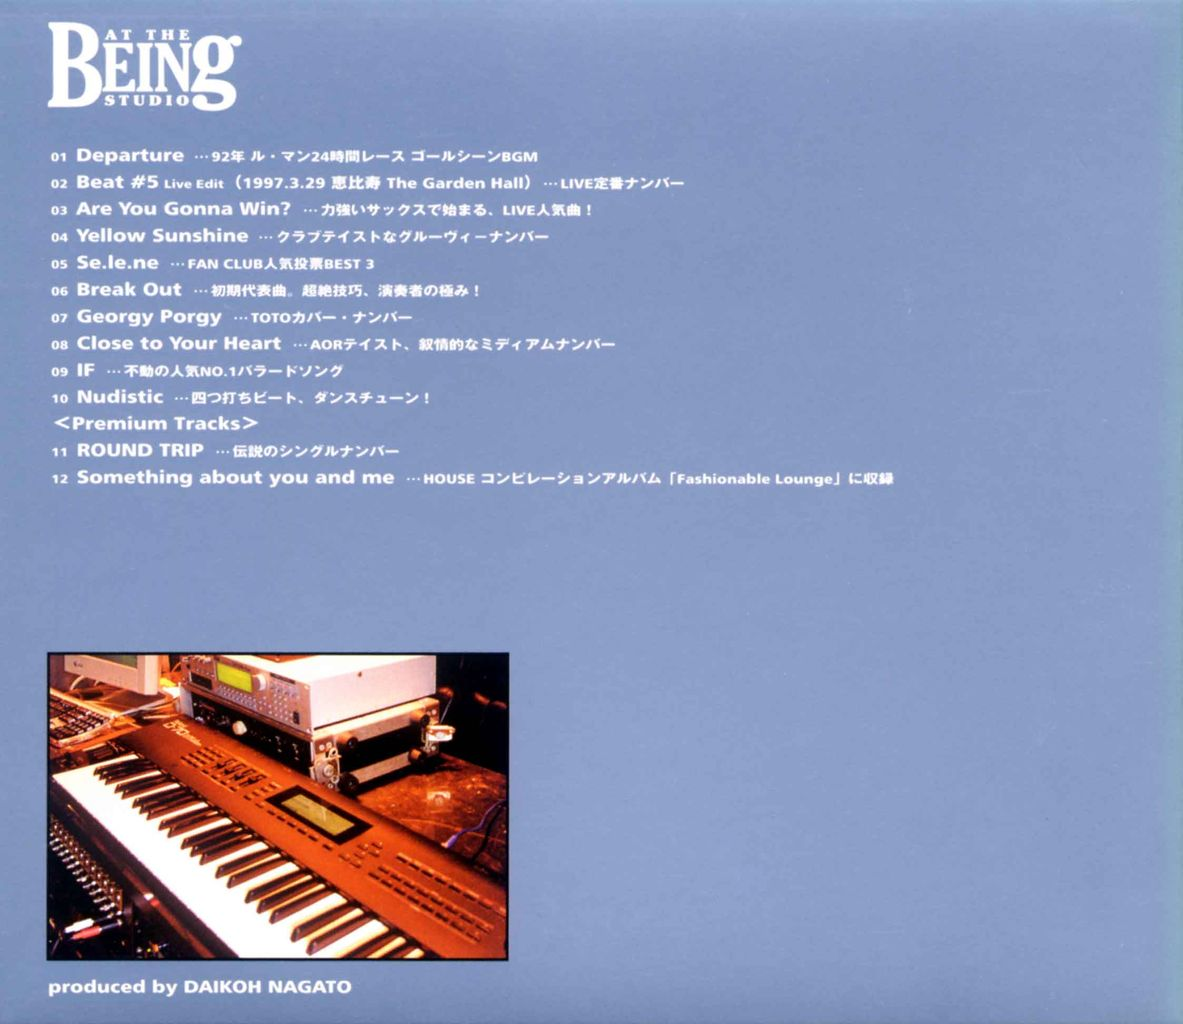 COMPLETE OF DIMENSION AT THE BEING STUDIO-2